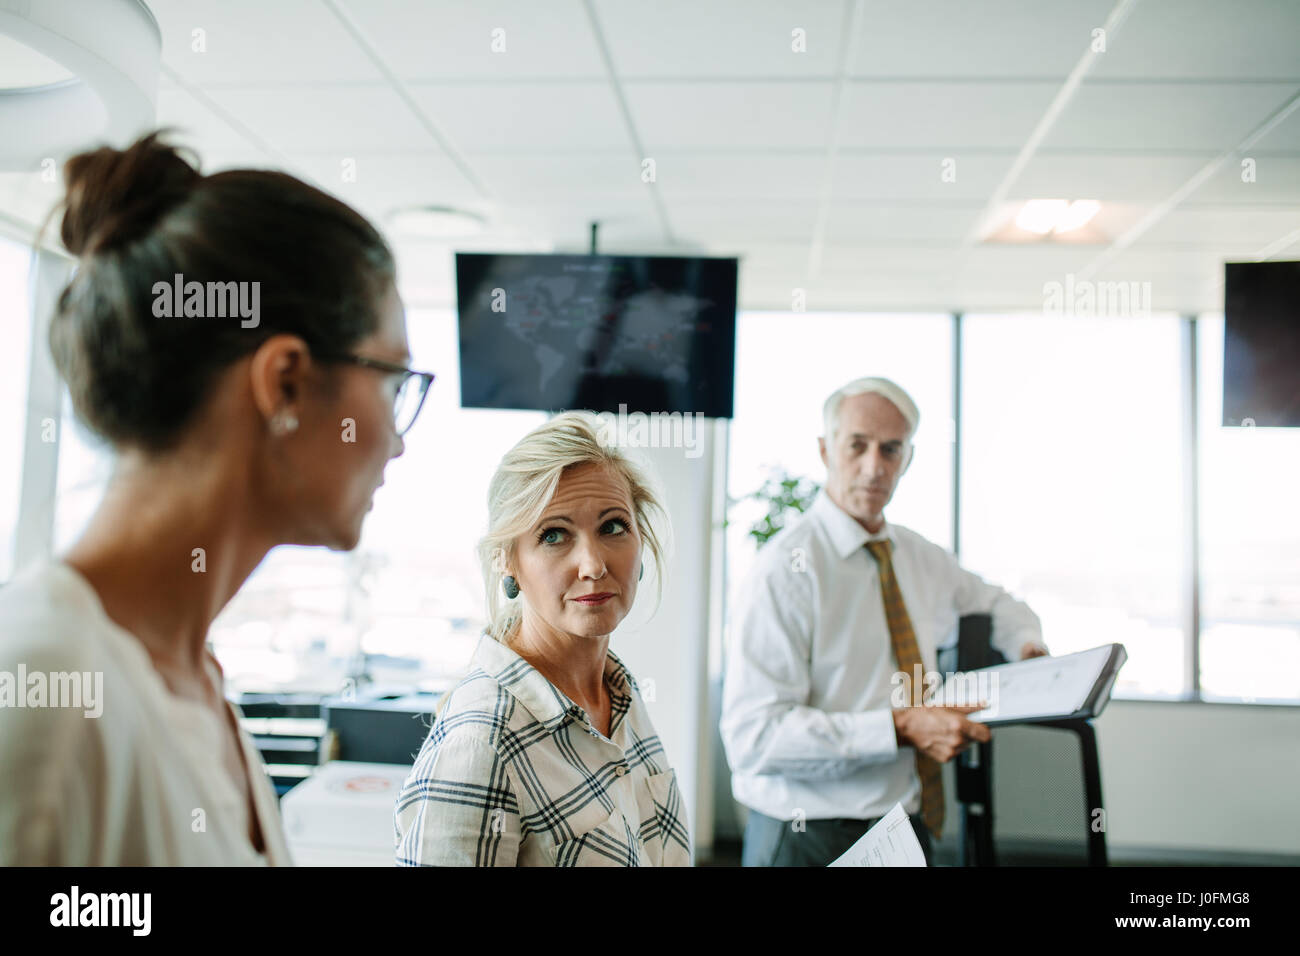 Mature businesswoman listening t her colleague with man standing in background. Business people having a informal - Stock Image